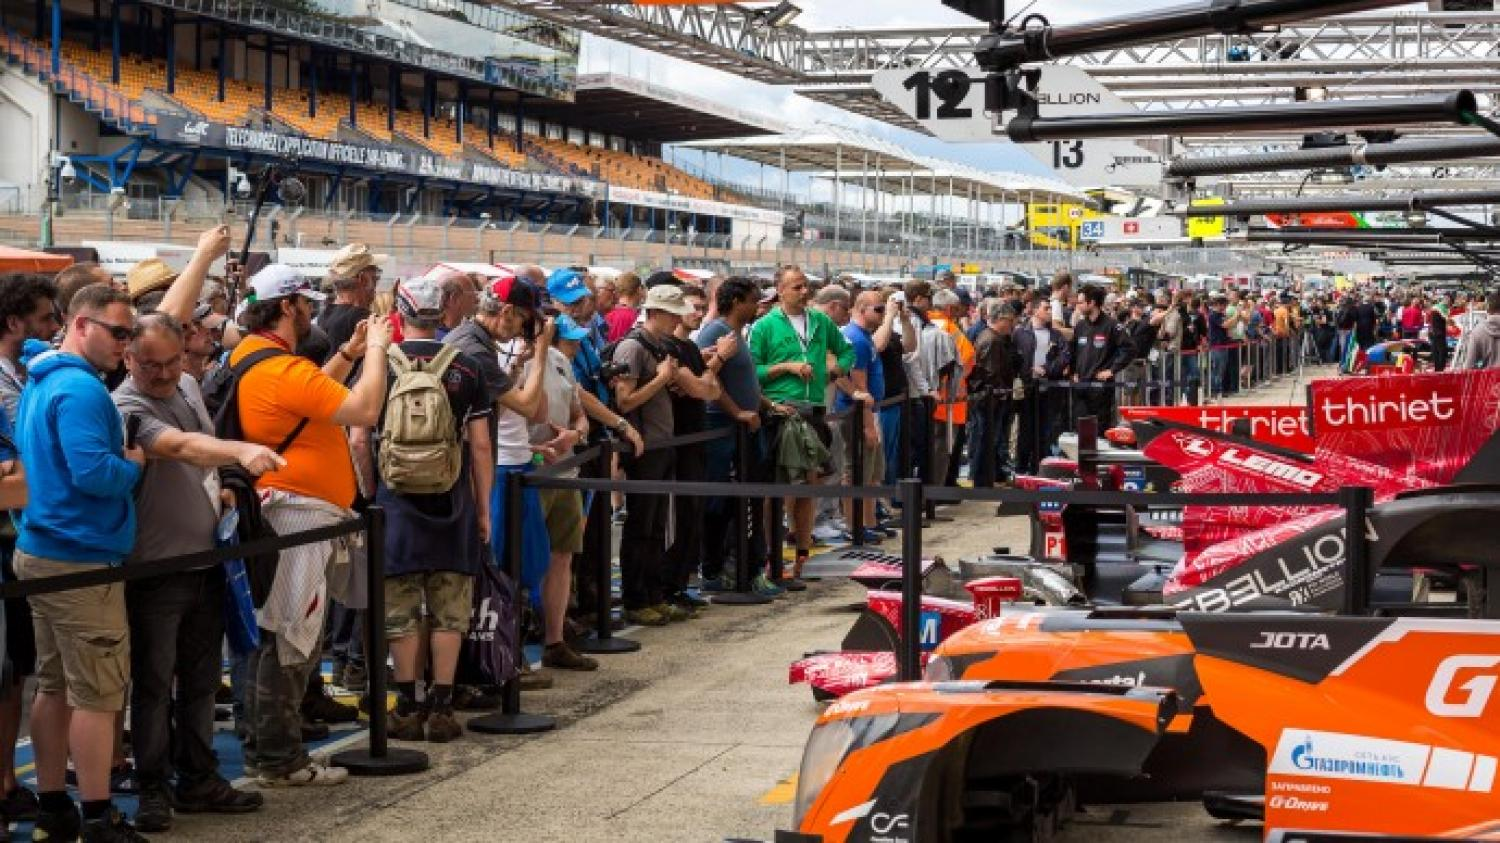 The pitlane is crowded today!